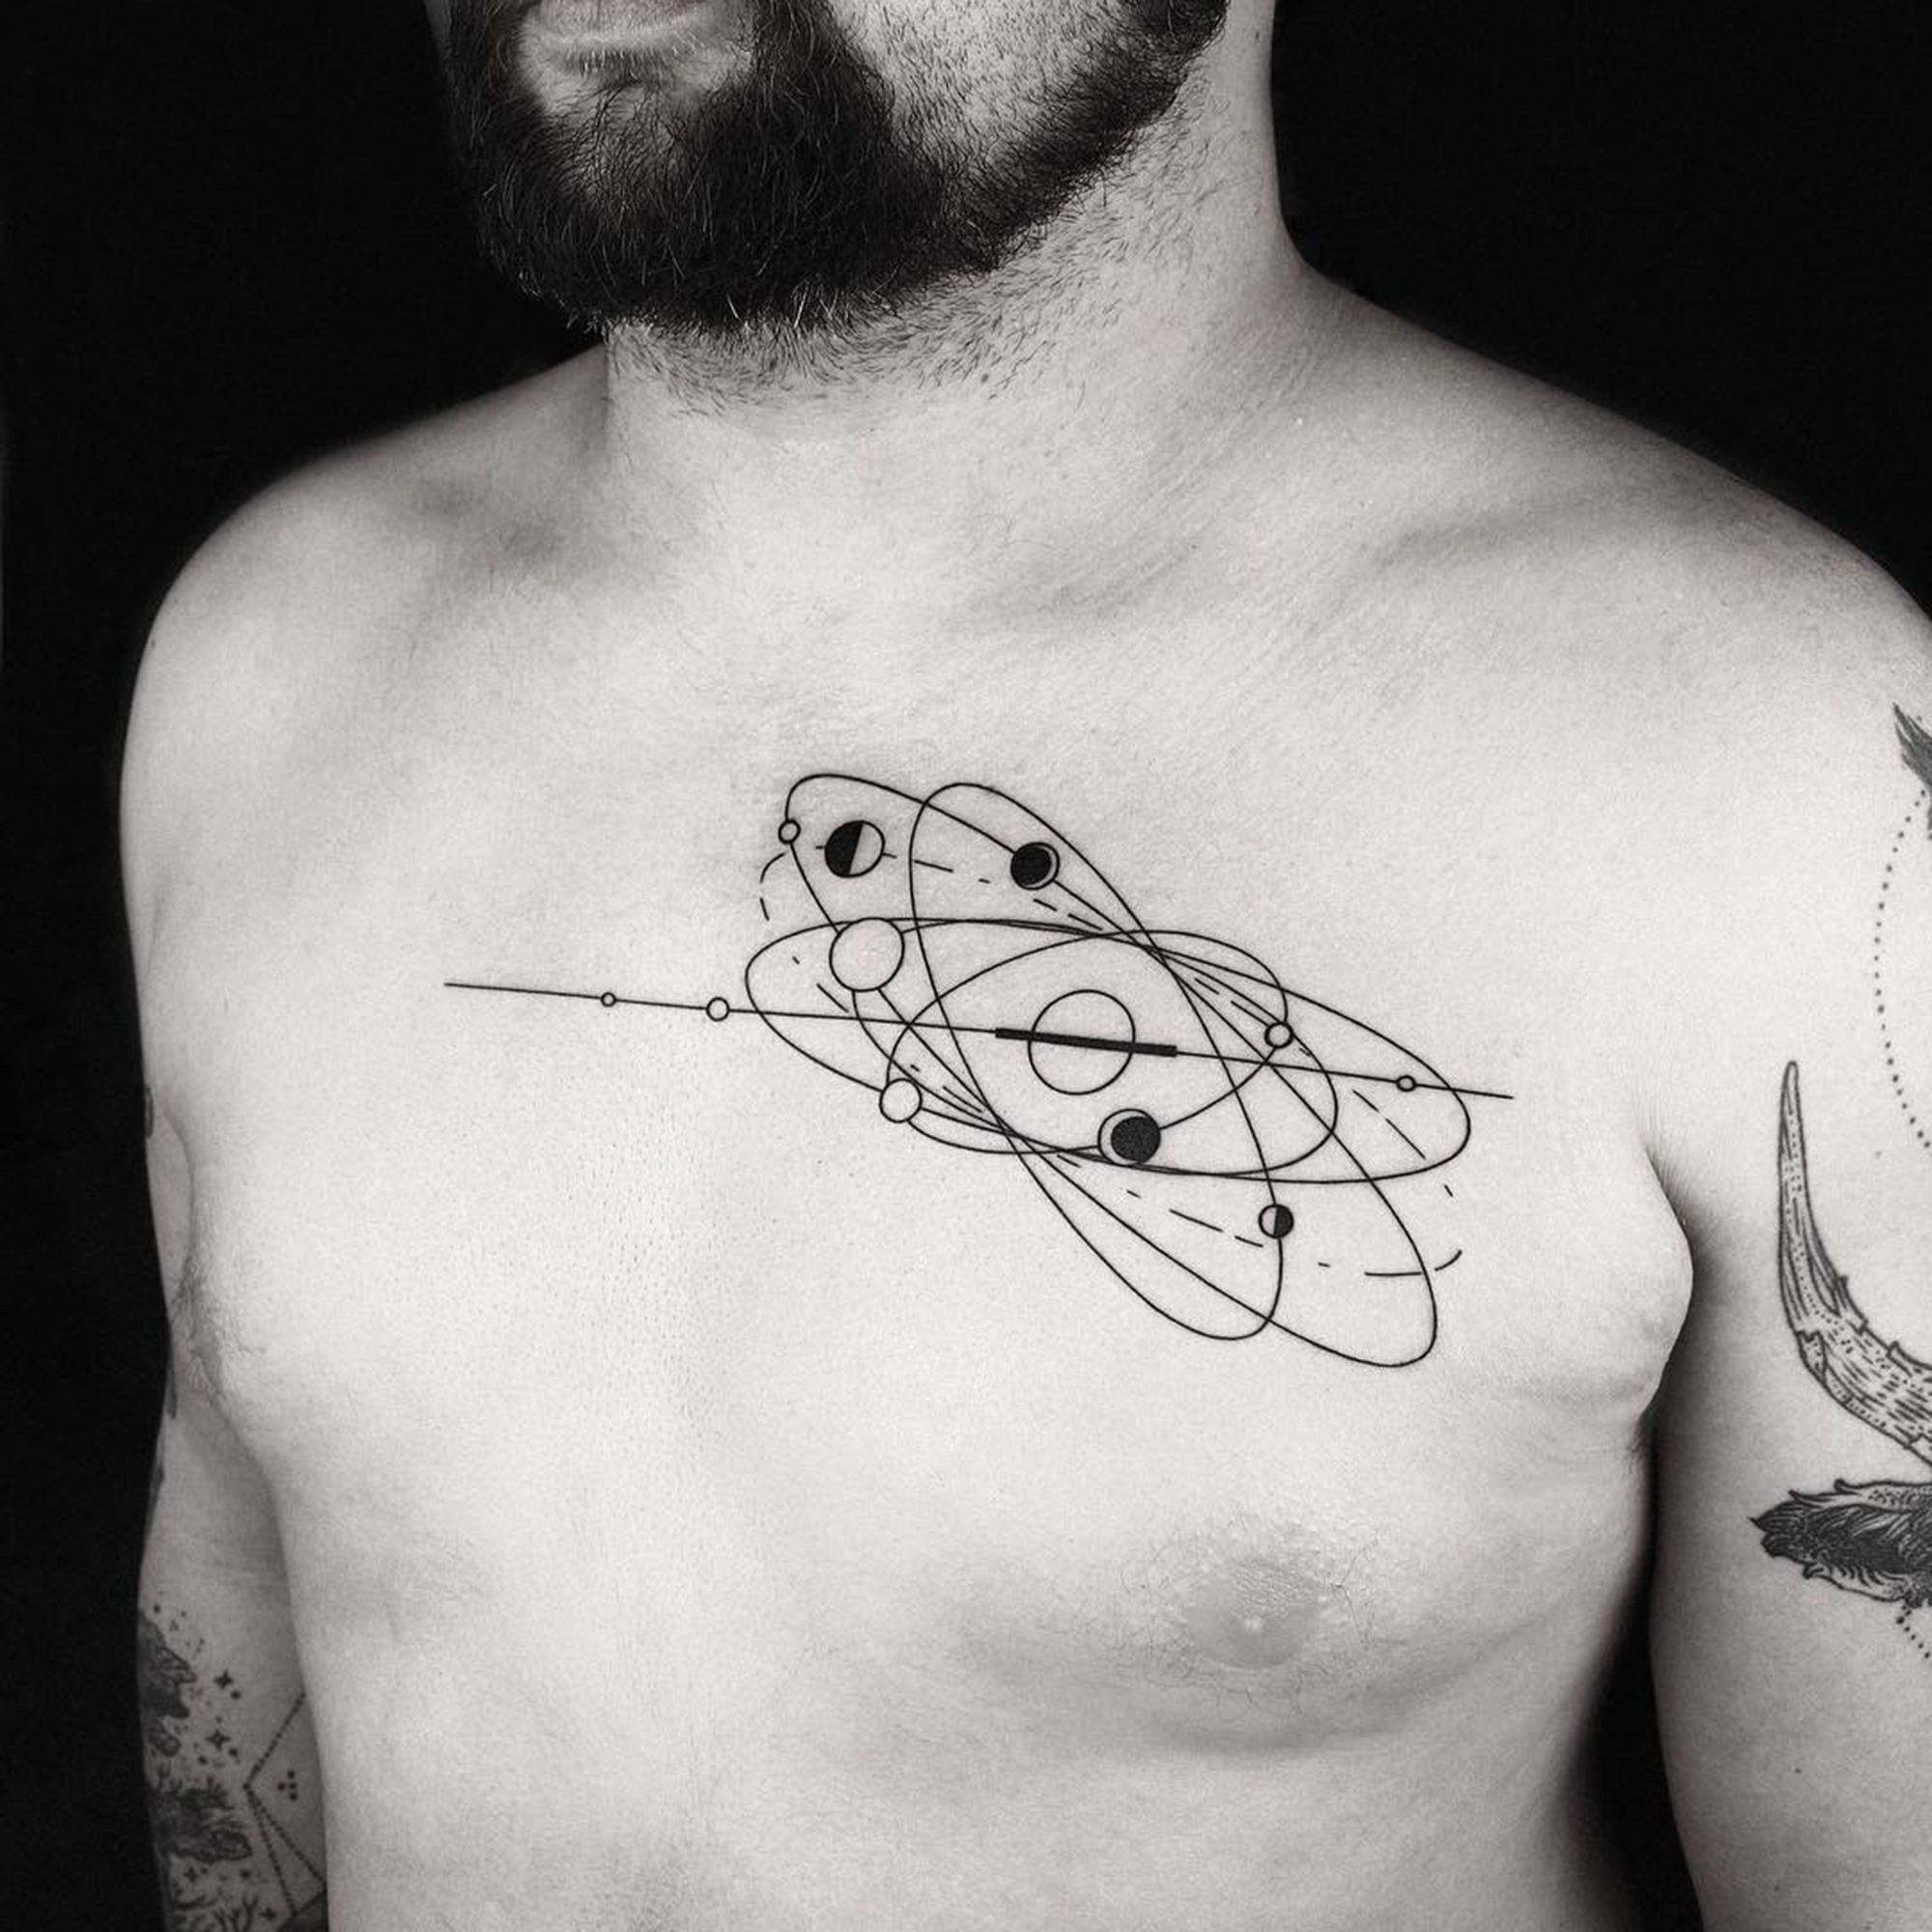 Okan Uckun - orbit chest tattoo